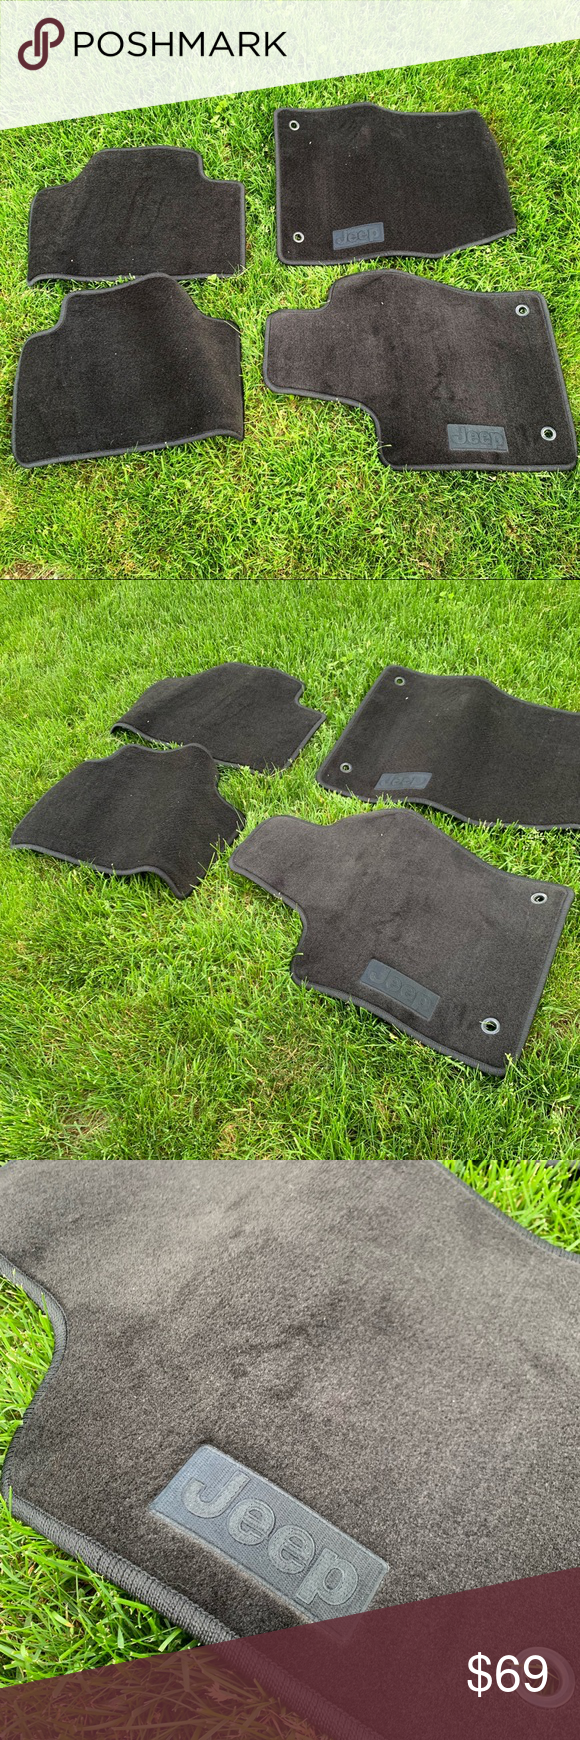 Jeep Grand Cherokee Carpet Floor Mats New Nwt Jeep Grand